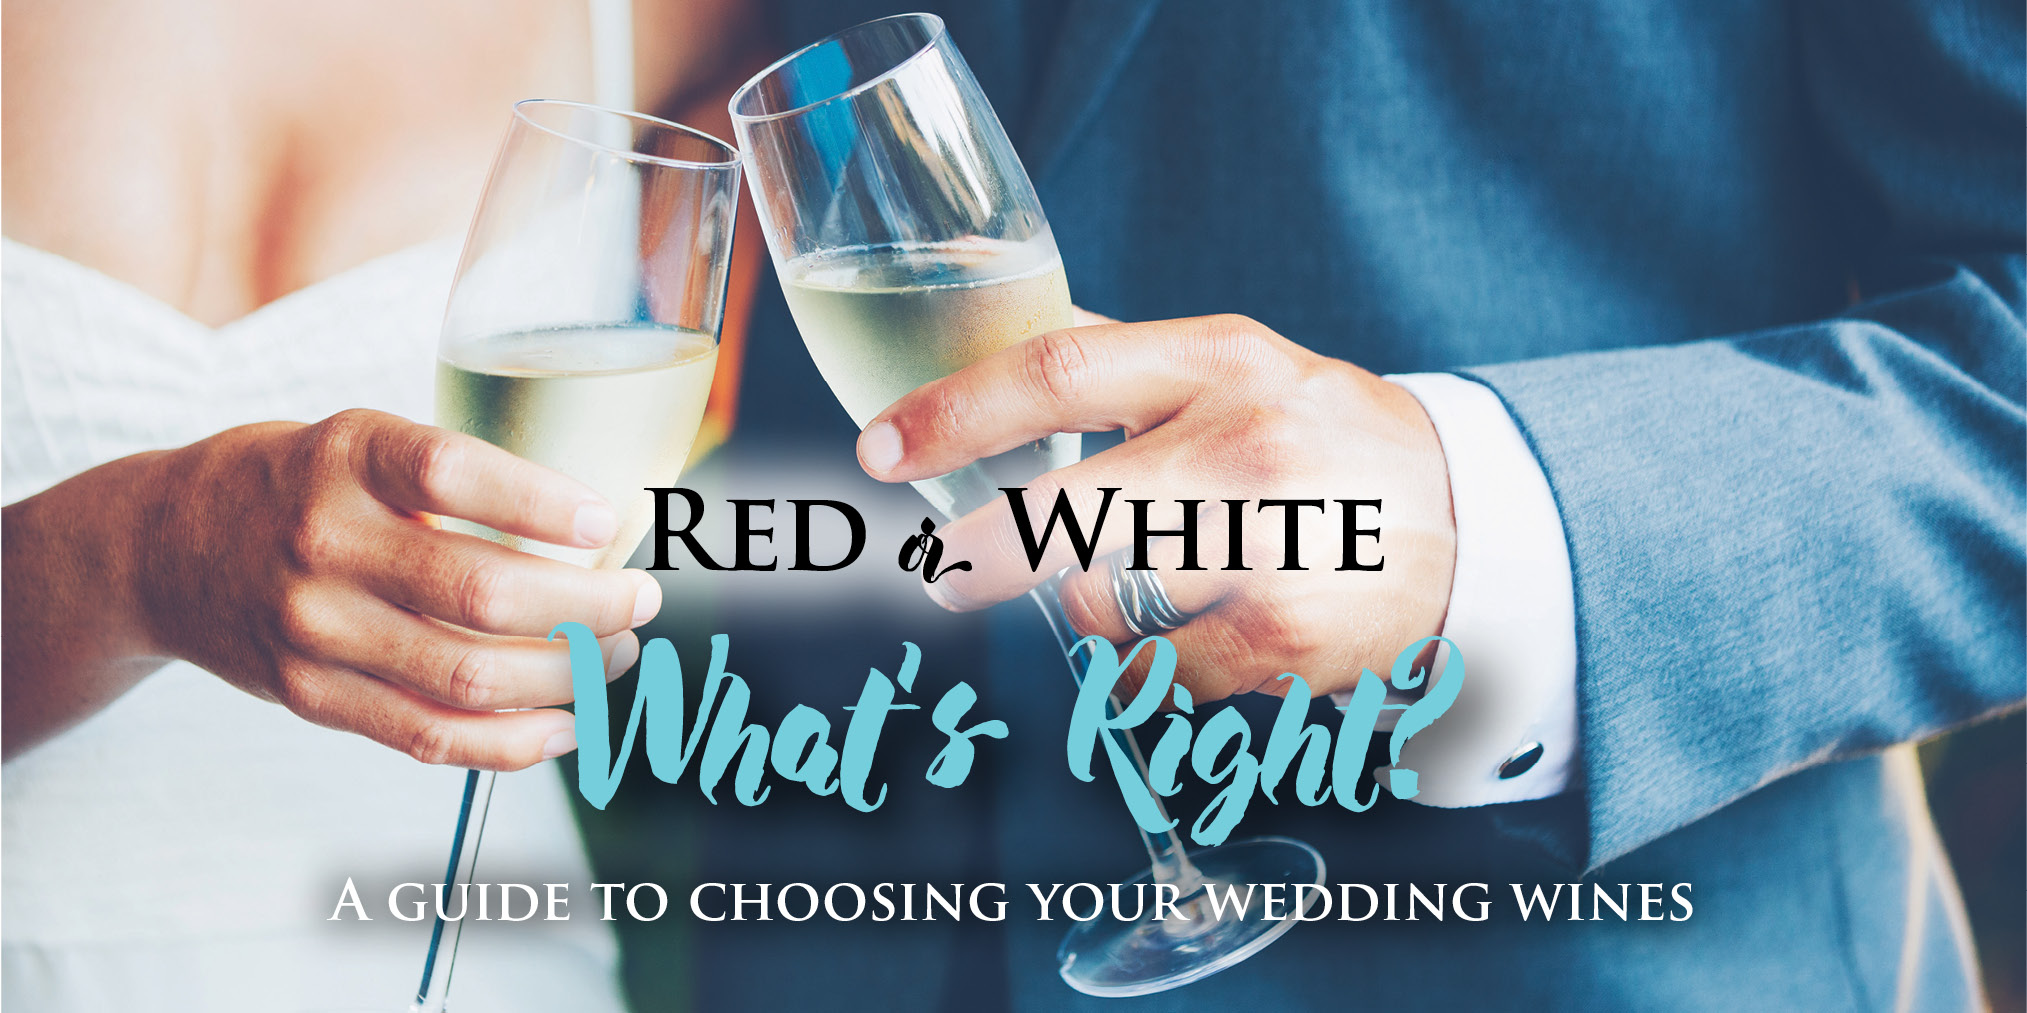 Red or White - What's Right/ A Guide to Choosing Your Wedding Wines